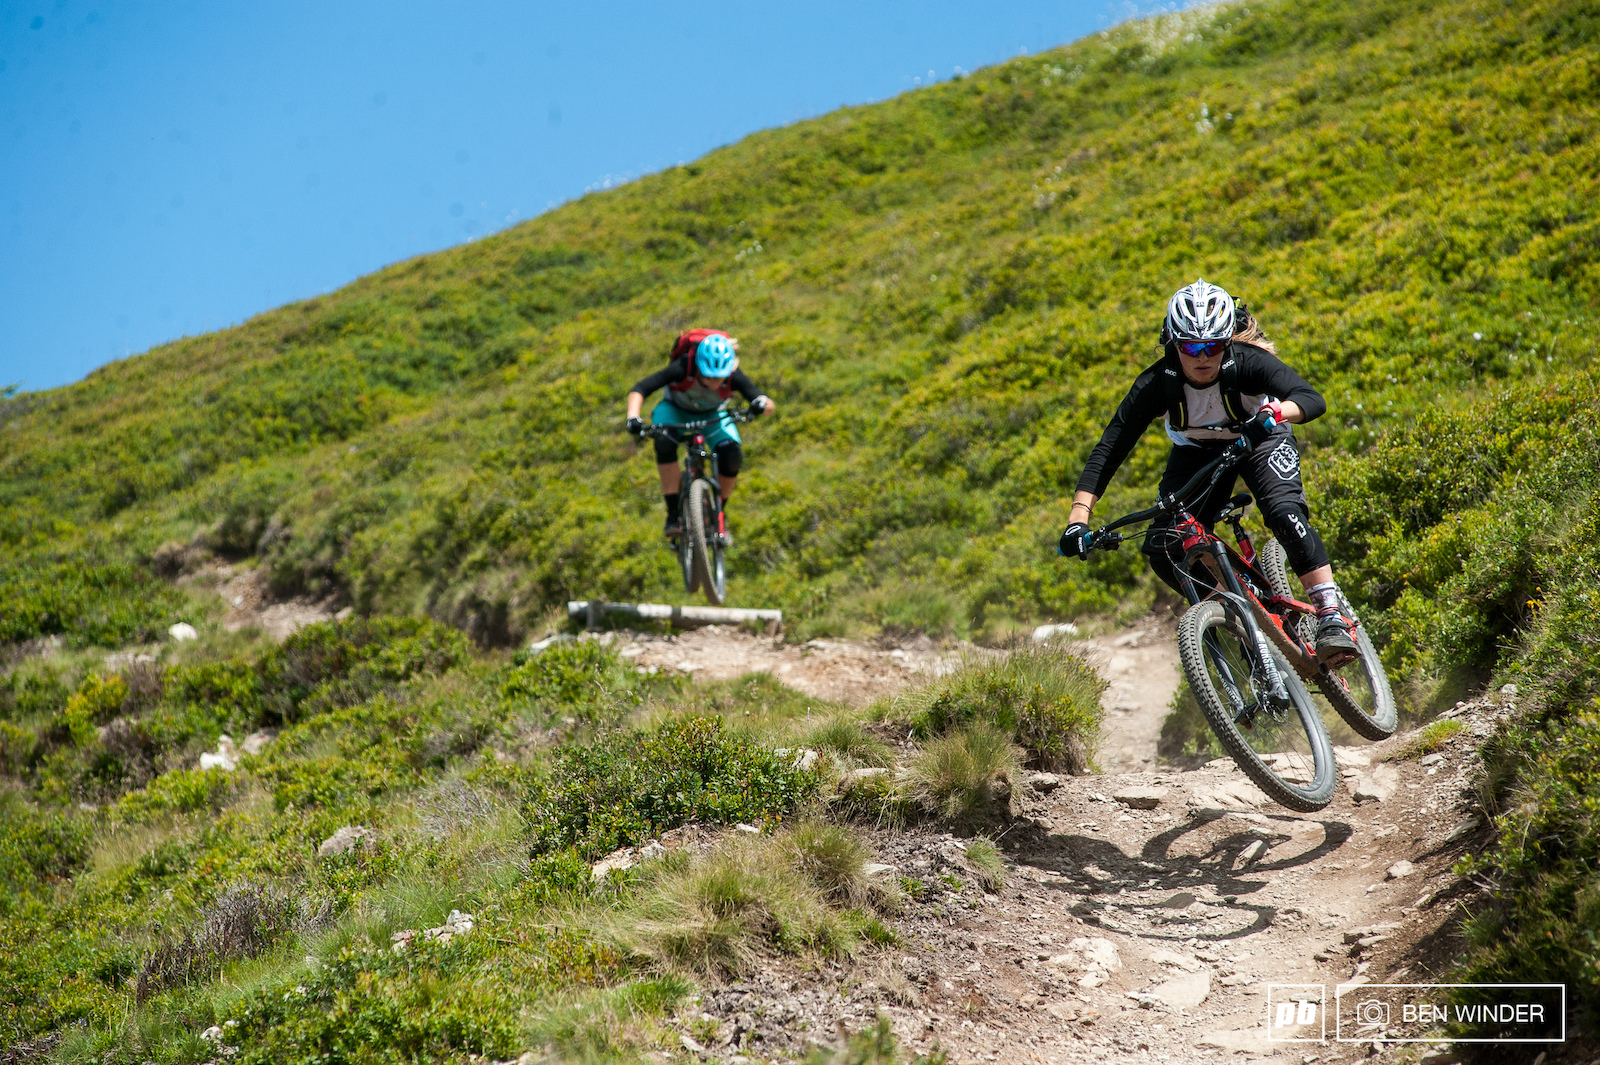 Vali Holl leading Kathi out on one of the enduro trails fast and flowy fun little rises and drops.